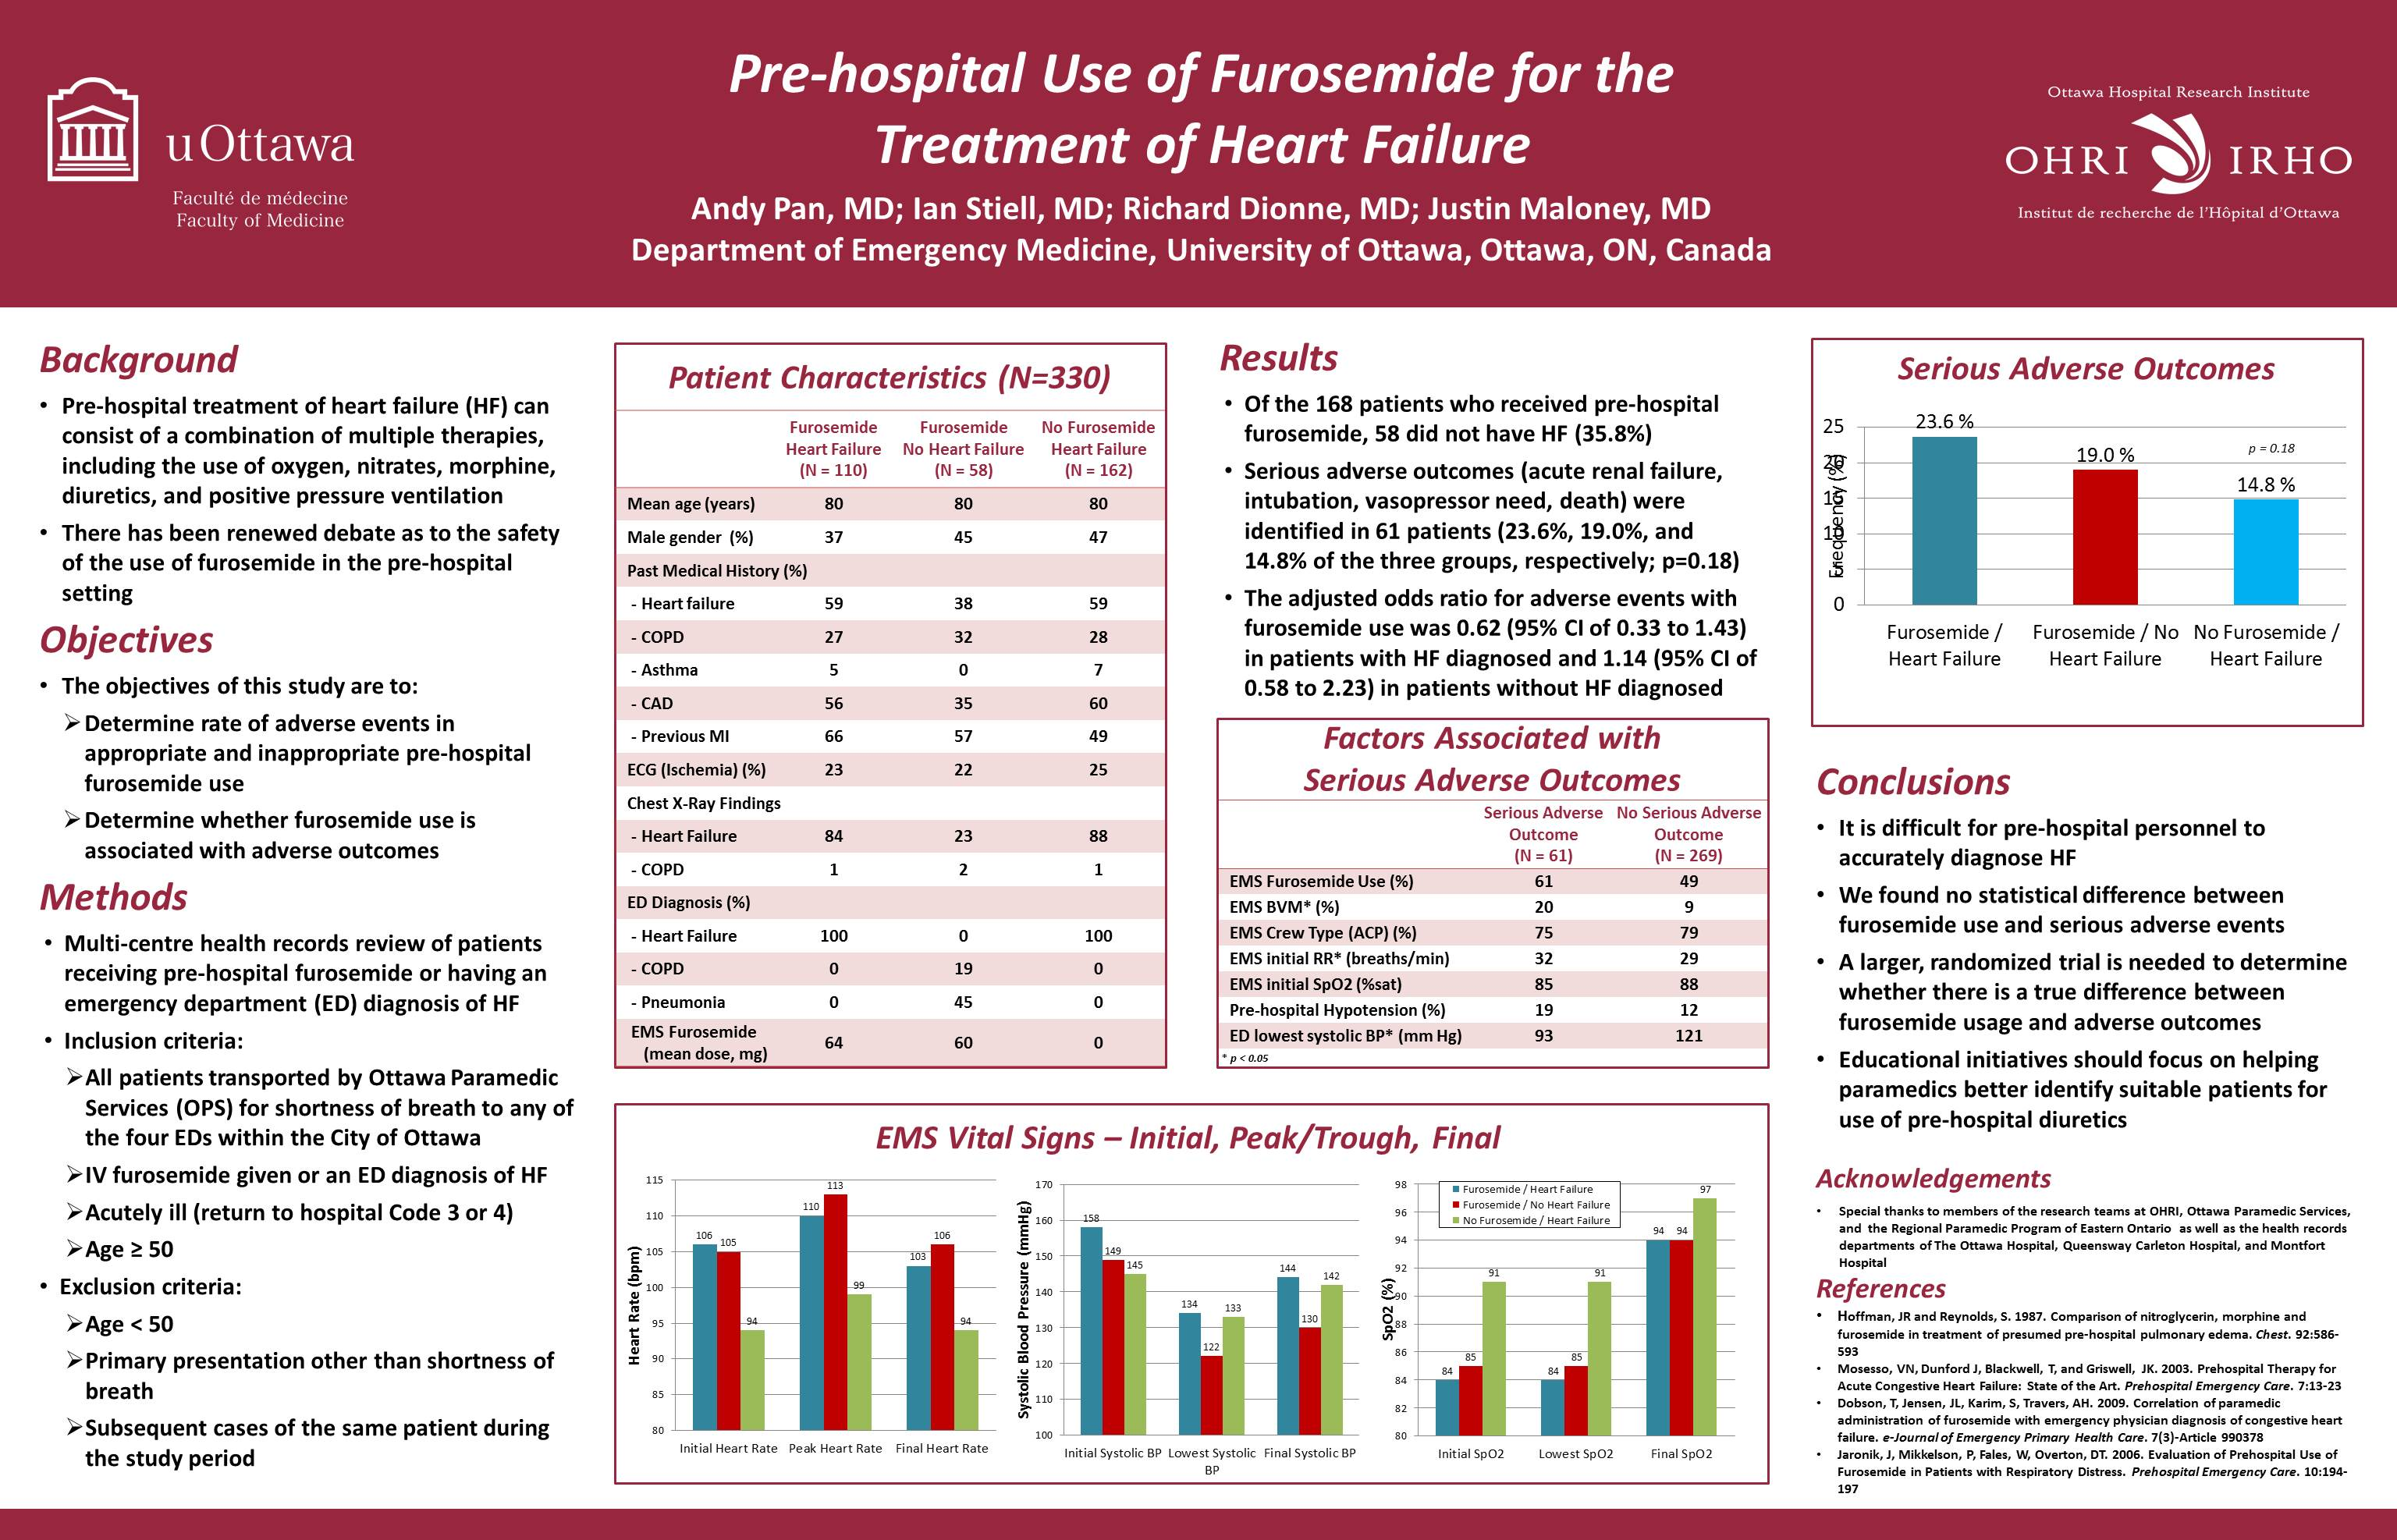 The use of furosemide in the prehospital setting for the treatment of heart failure. CAEP 2012